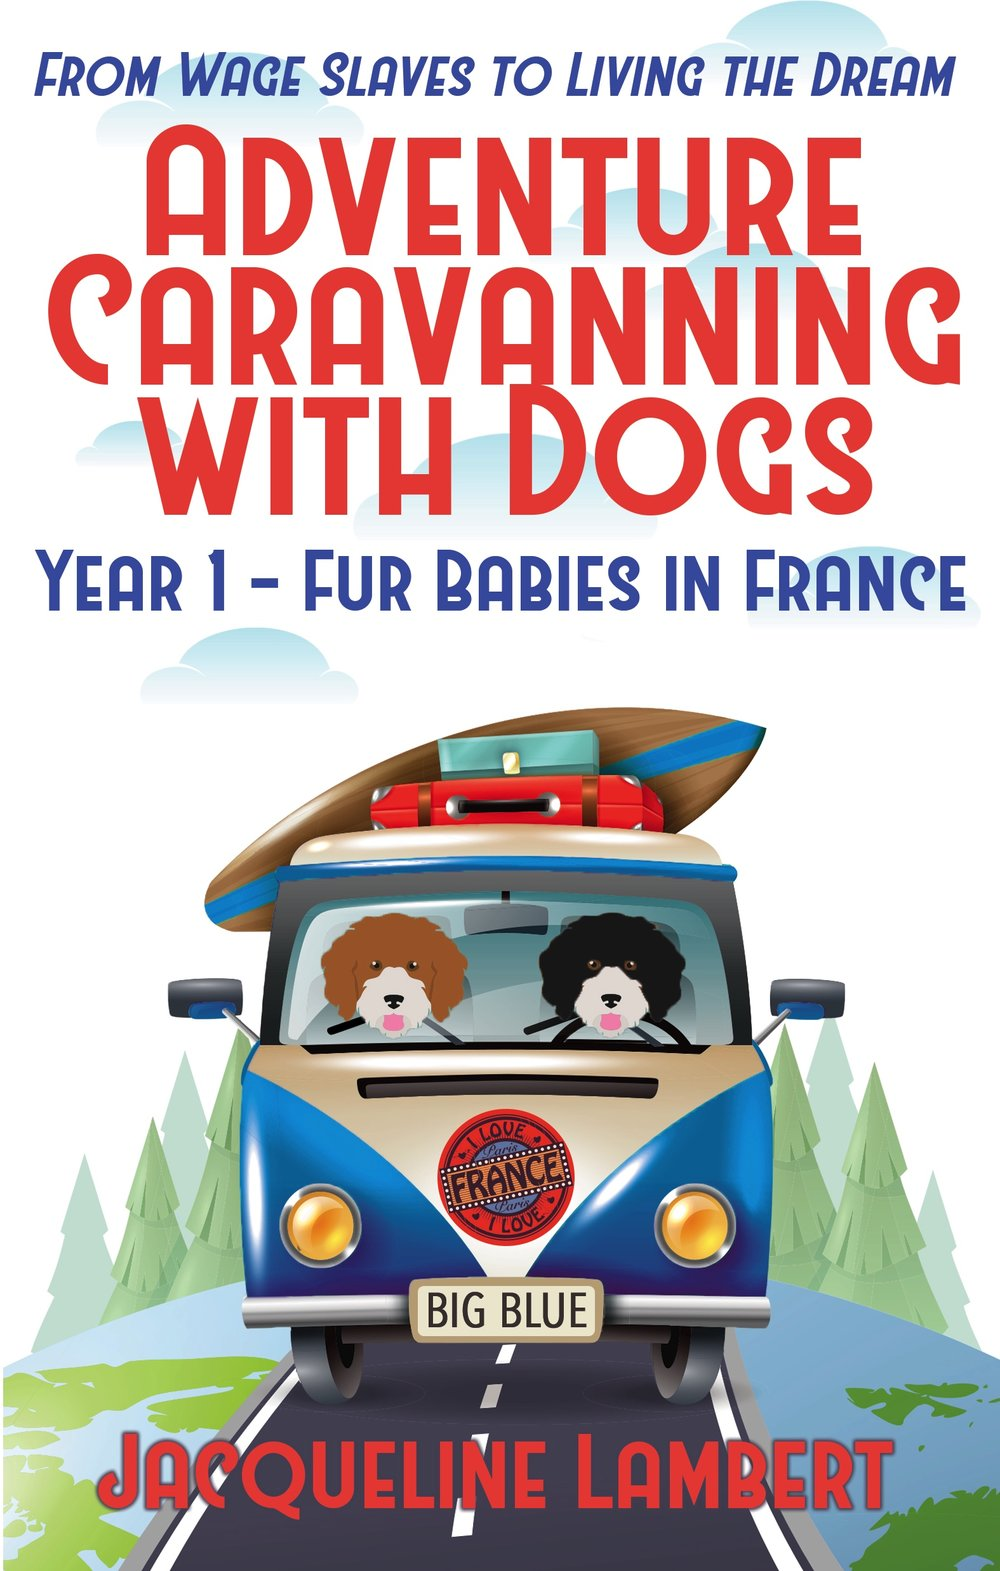 ADVENTURE-CARAVANNING-WITH-DOGS-Kindle.jpg